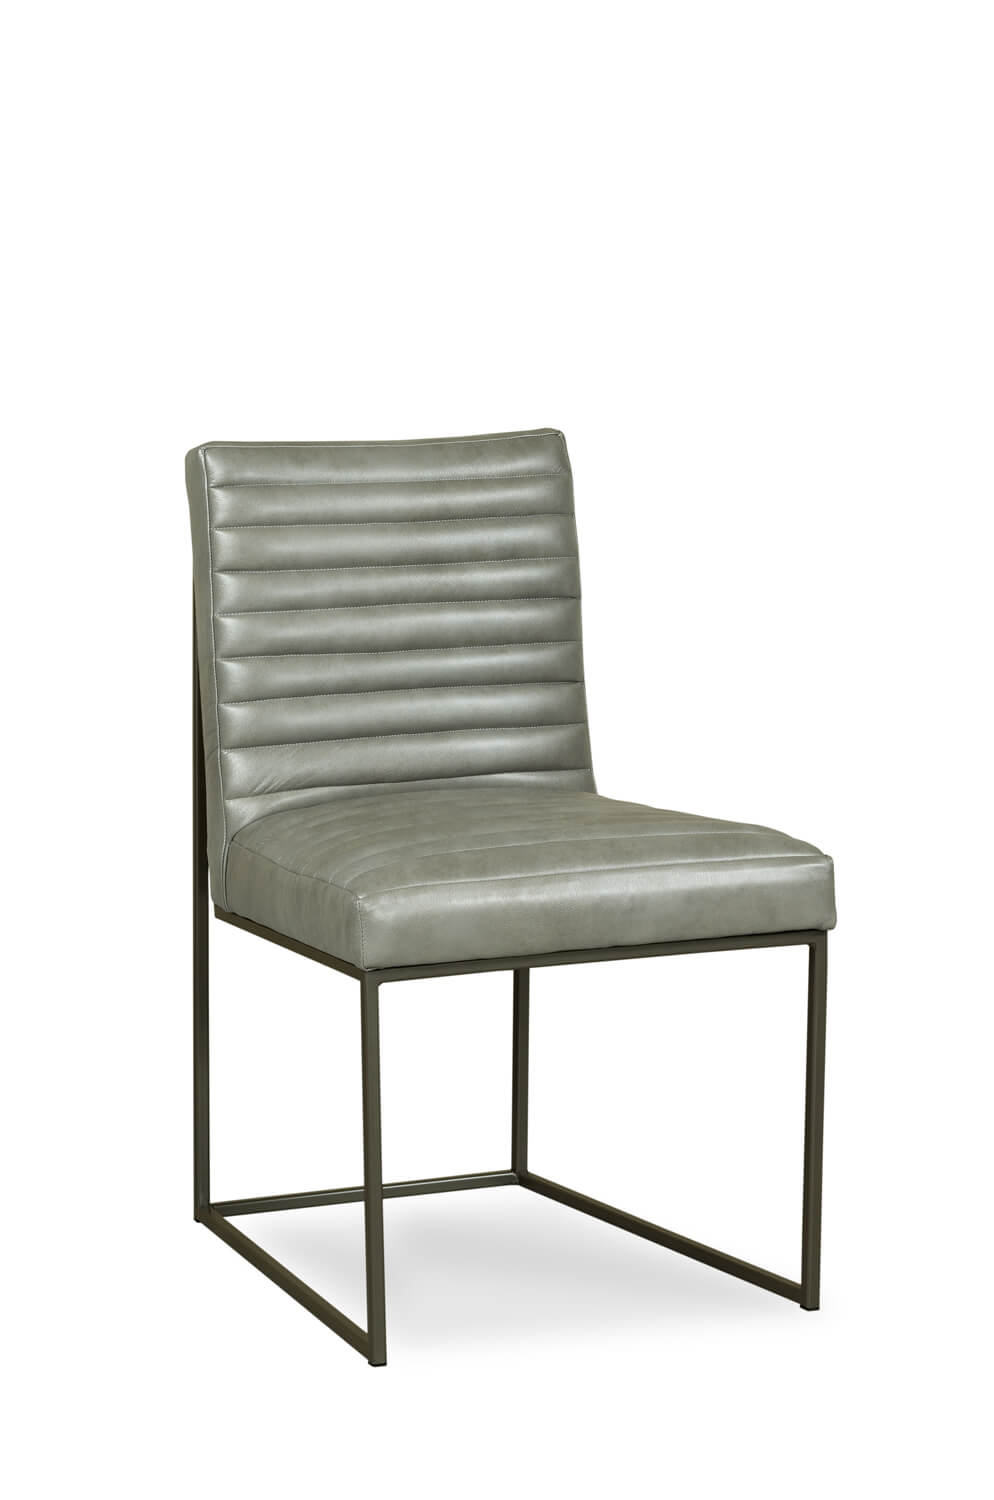 Fairfield Chairs Uma Upholstered Dining Chair With Sled Base